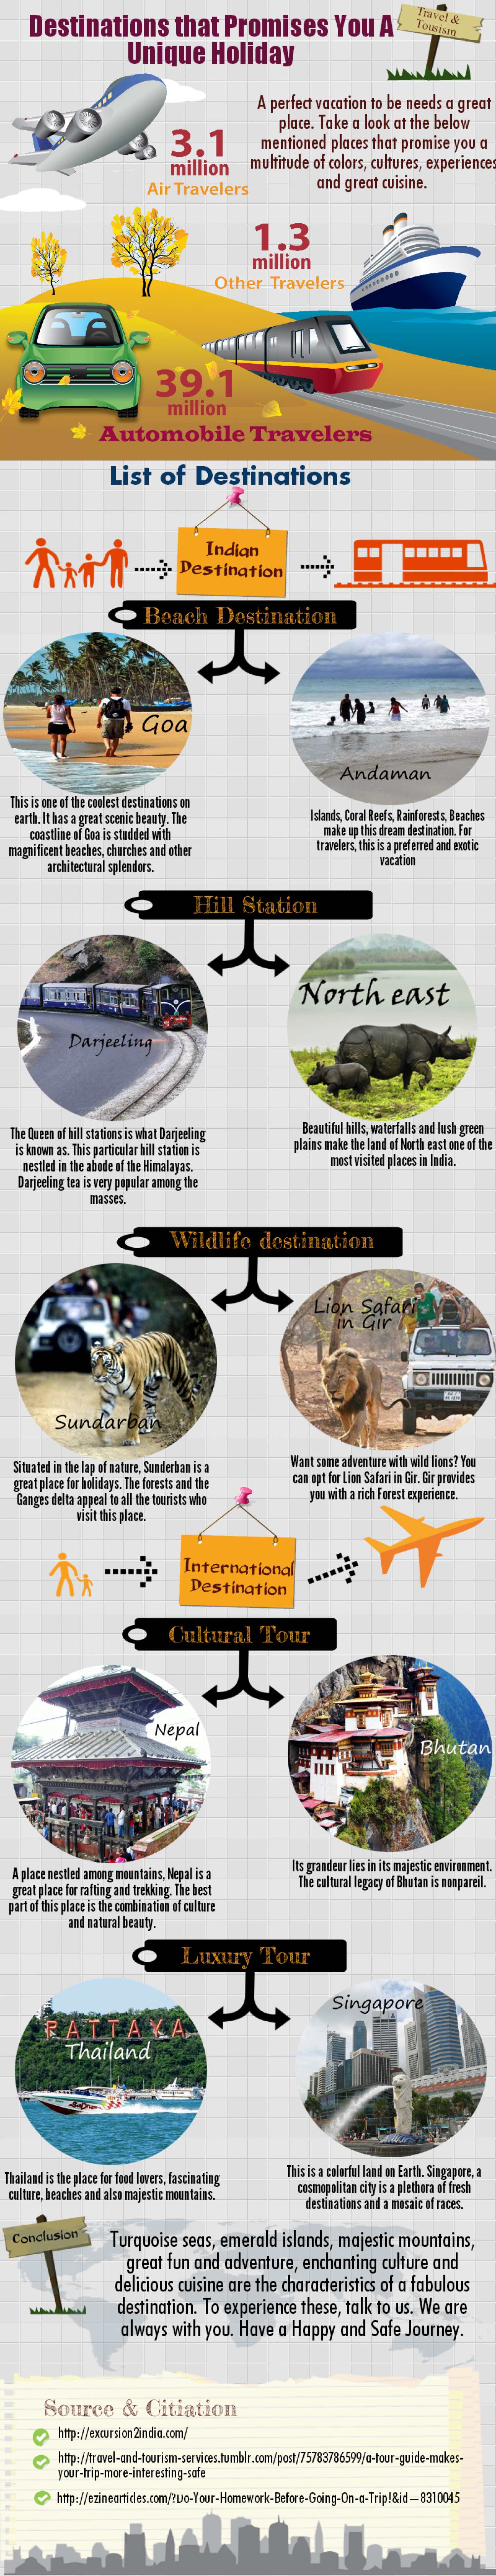 Destinations that Promises You a Unique Holiday Infographic